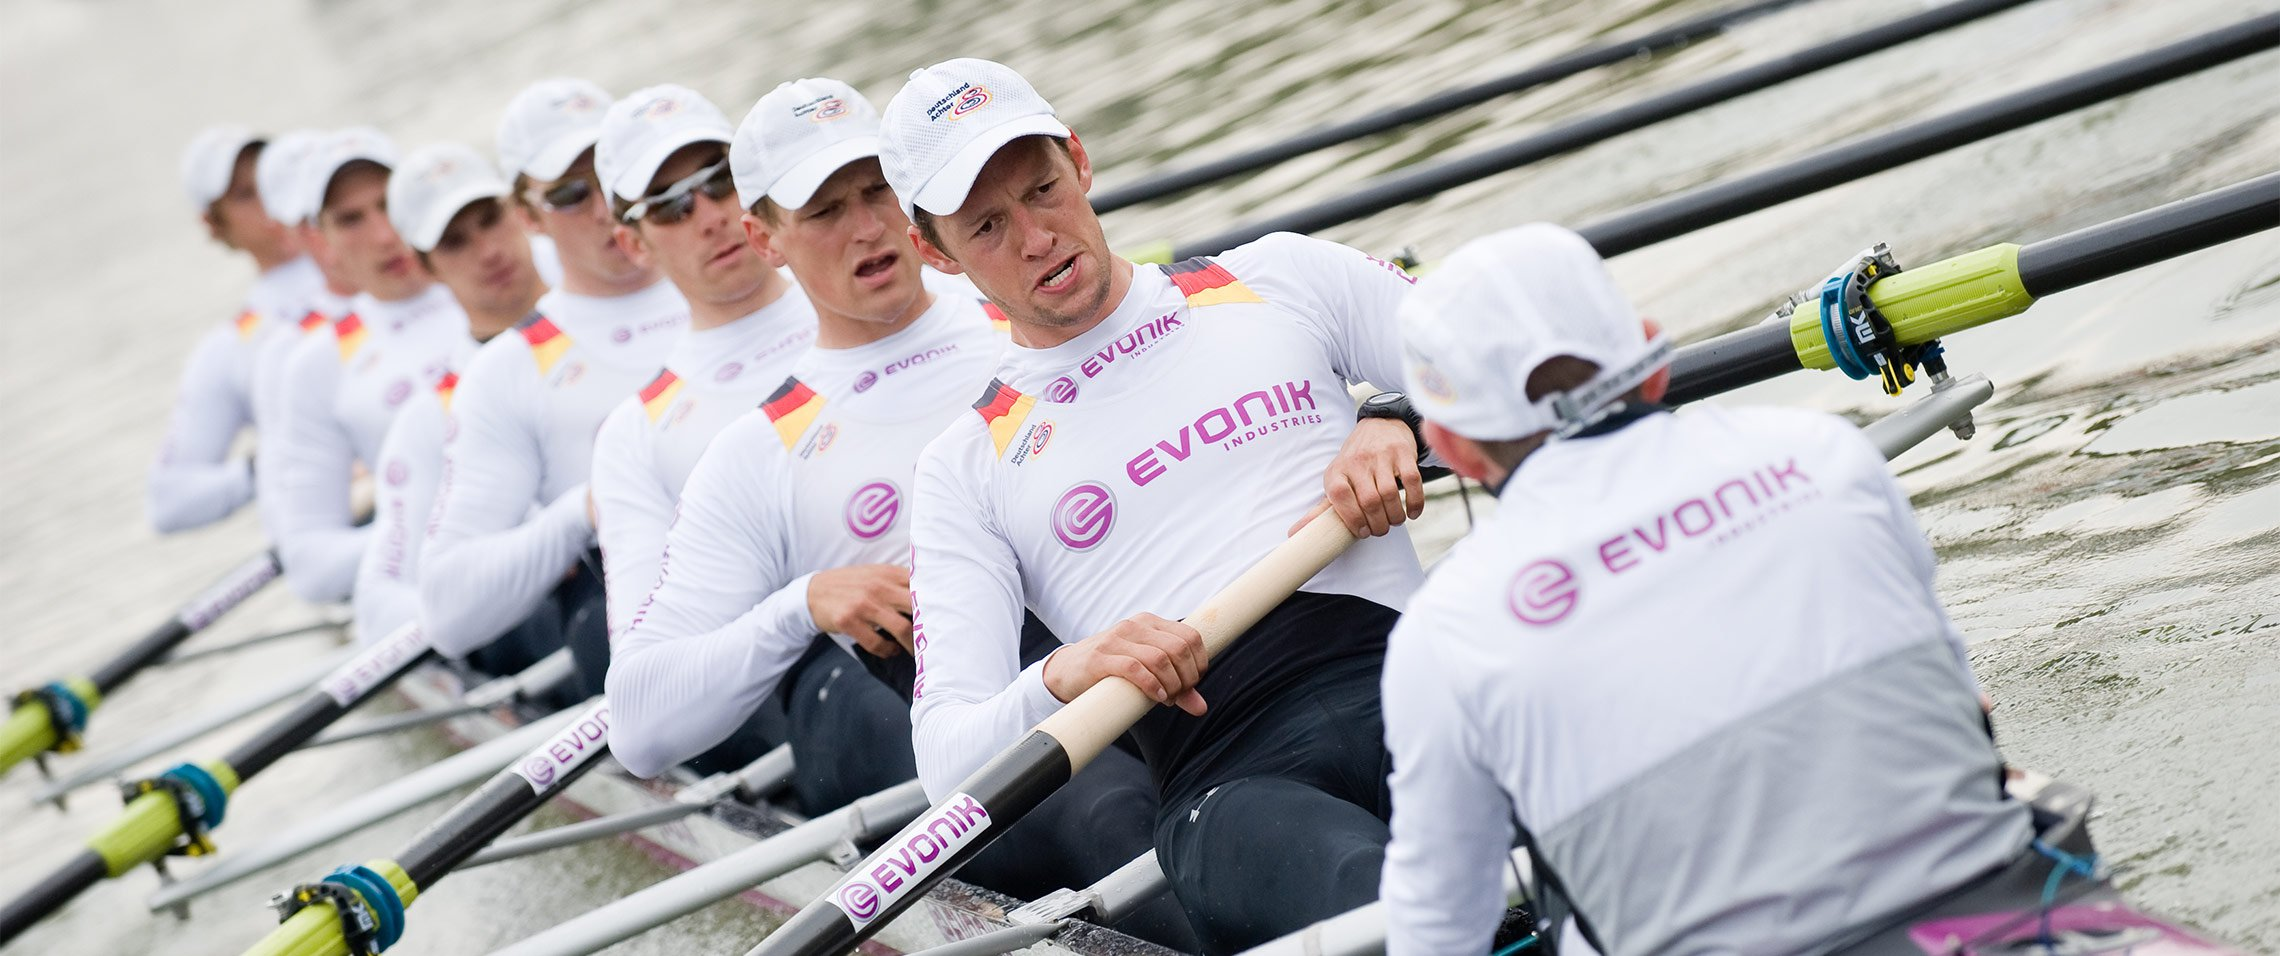 why-evonik-team-spirit-hero.jpg